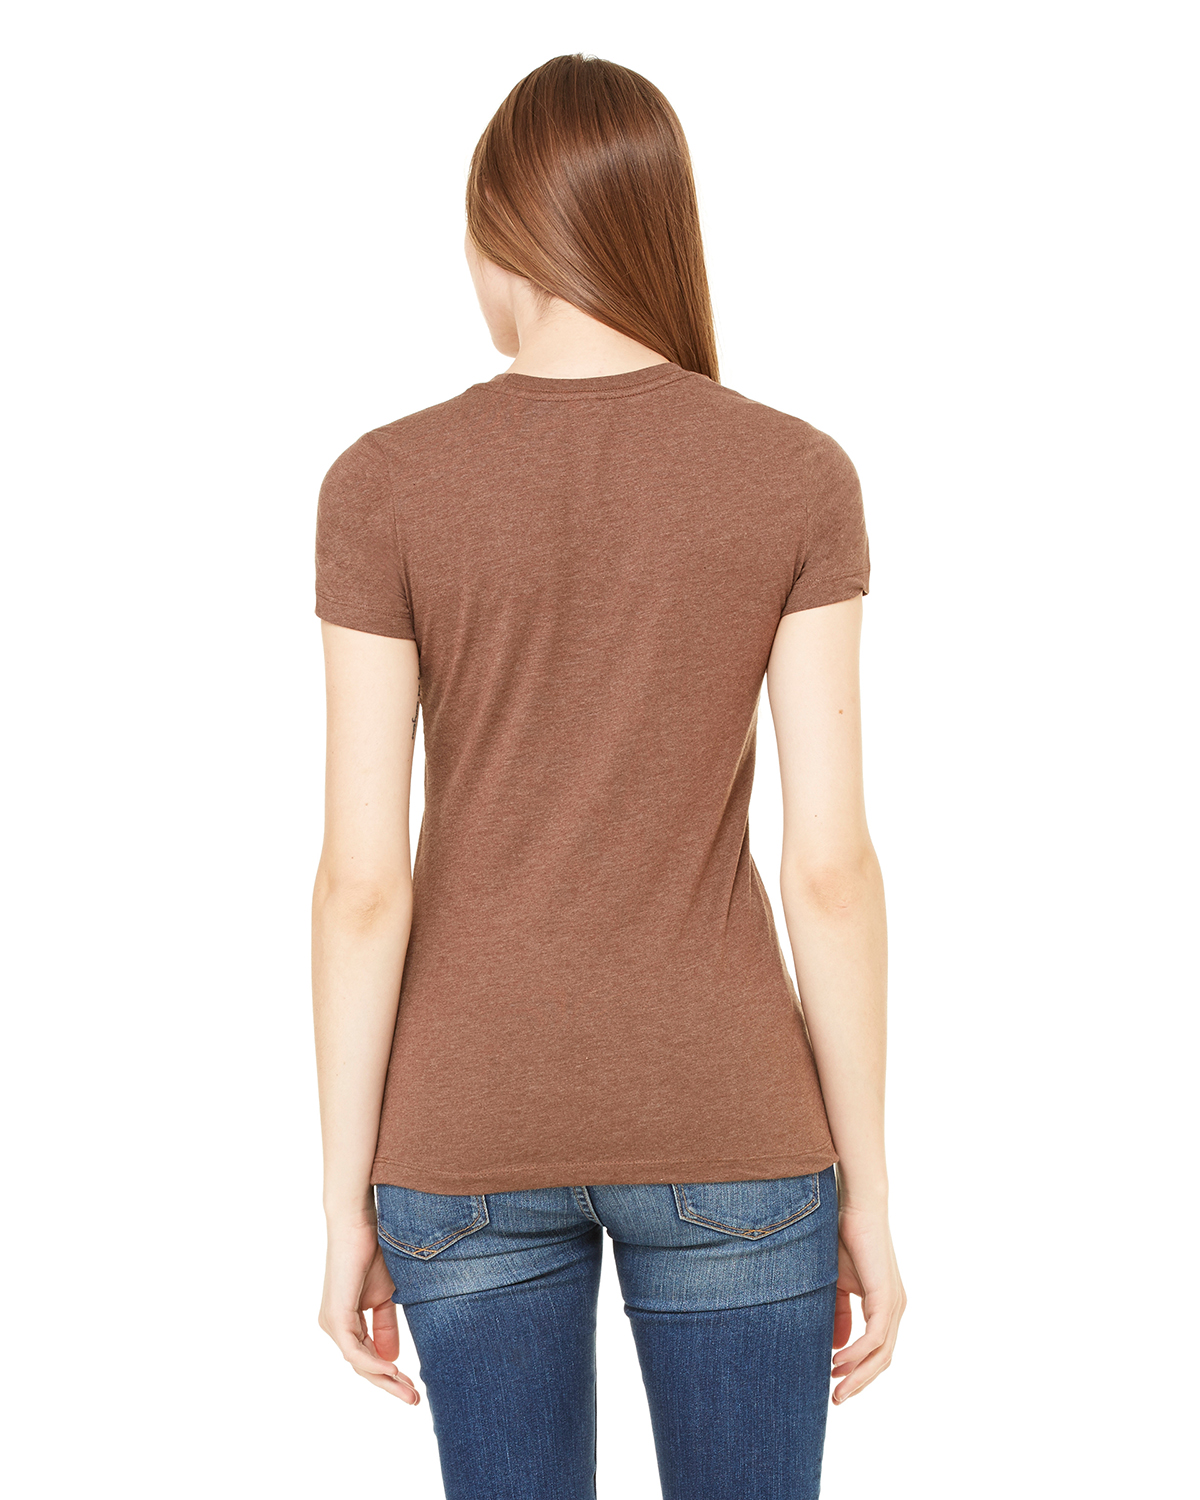 Bella-Canvas-Womens-The-Favorite-T-Shirt-6004-Size-S-2XL thumbnail 66